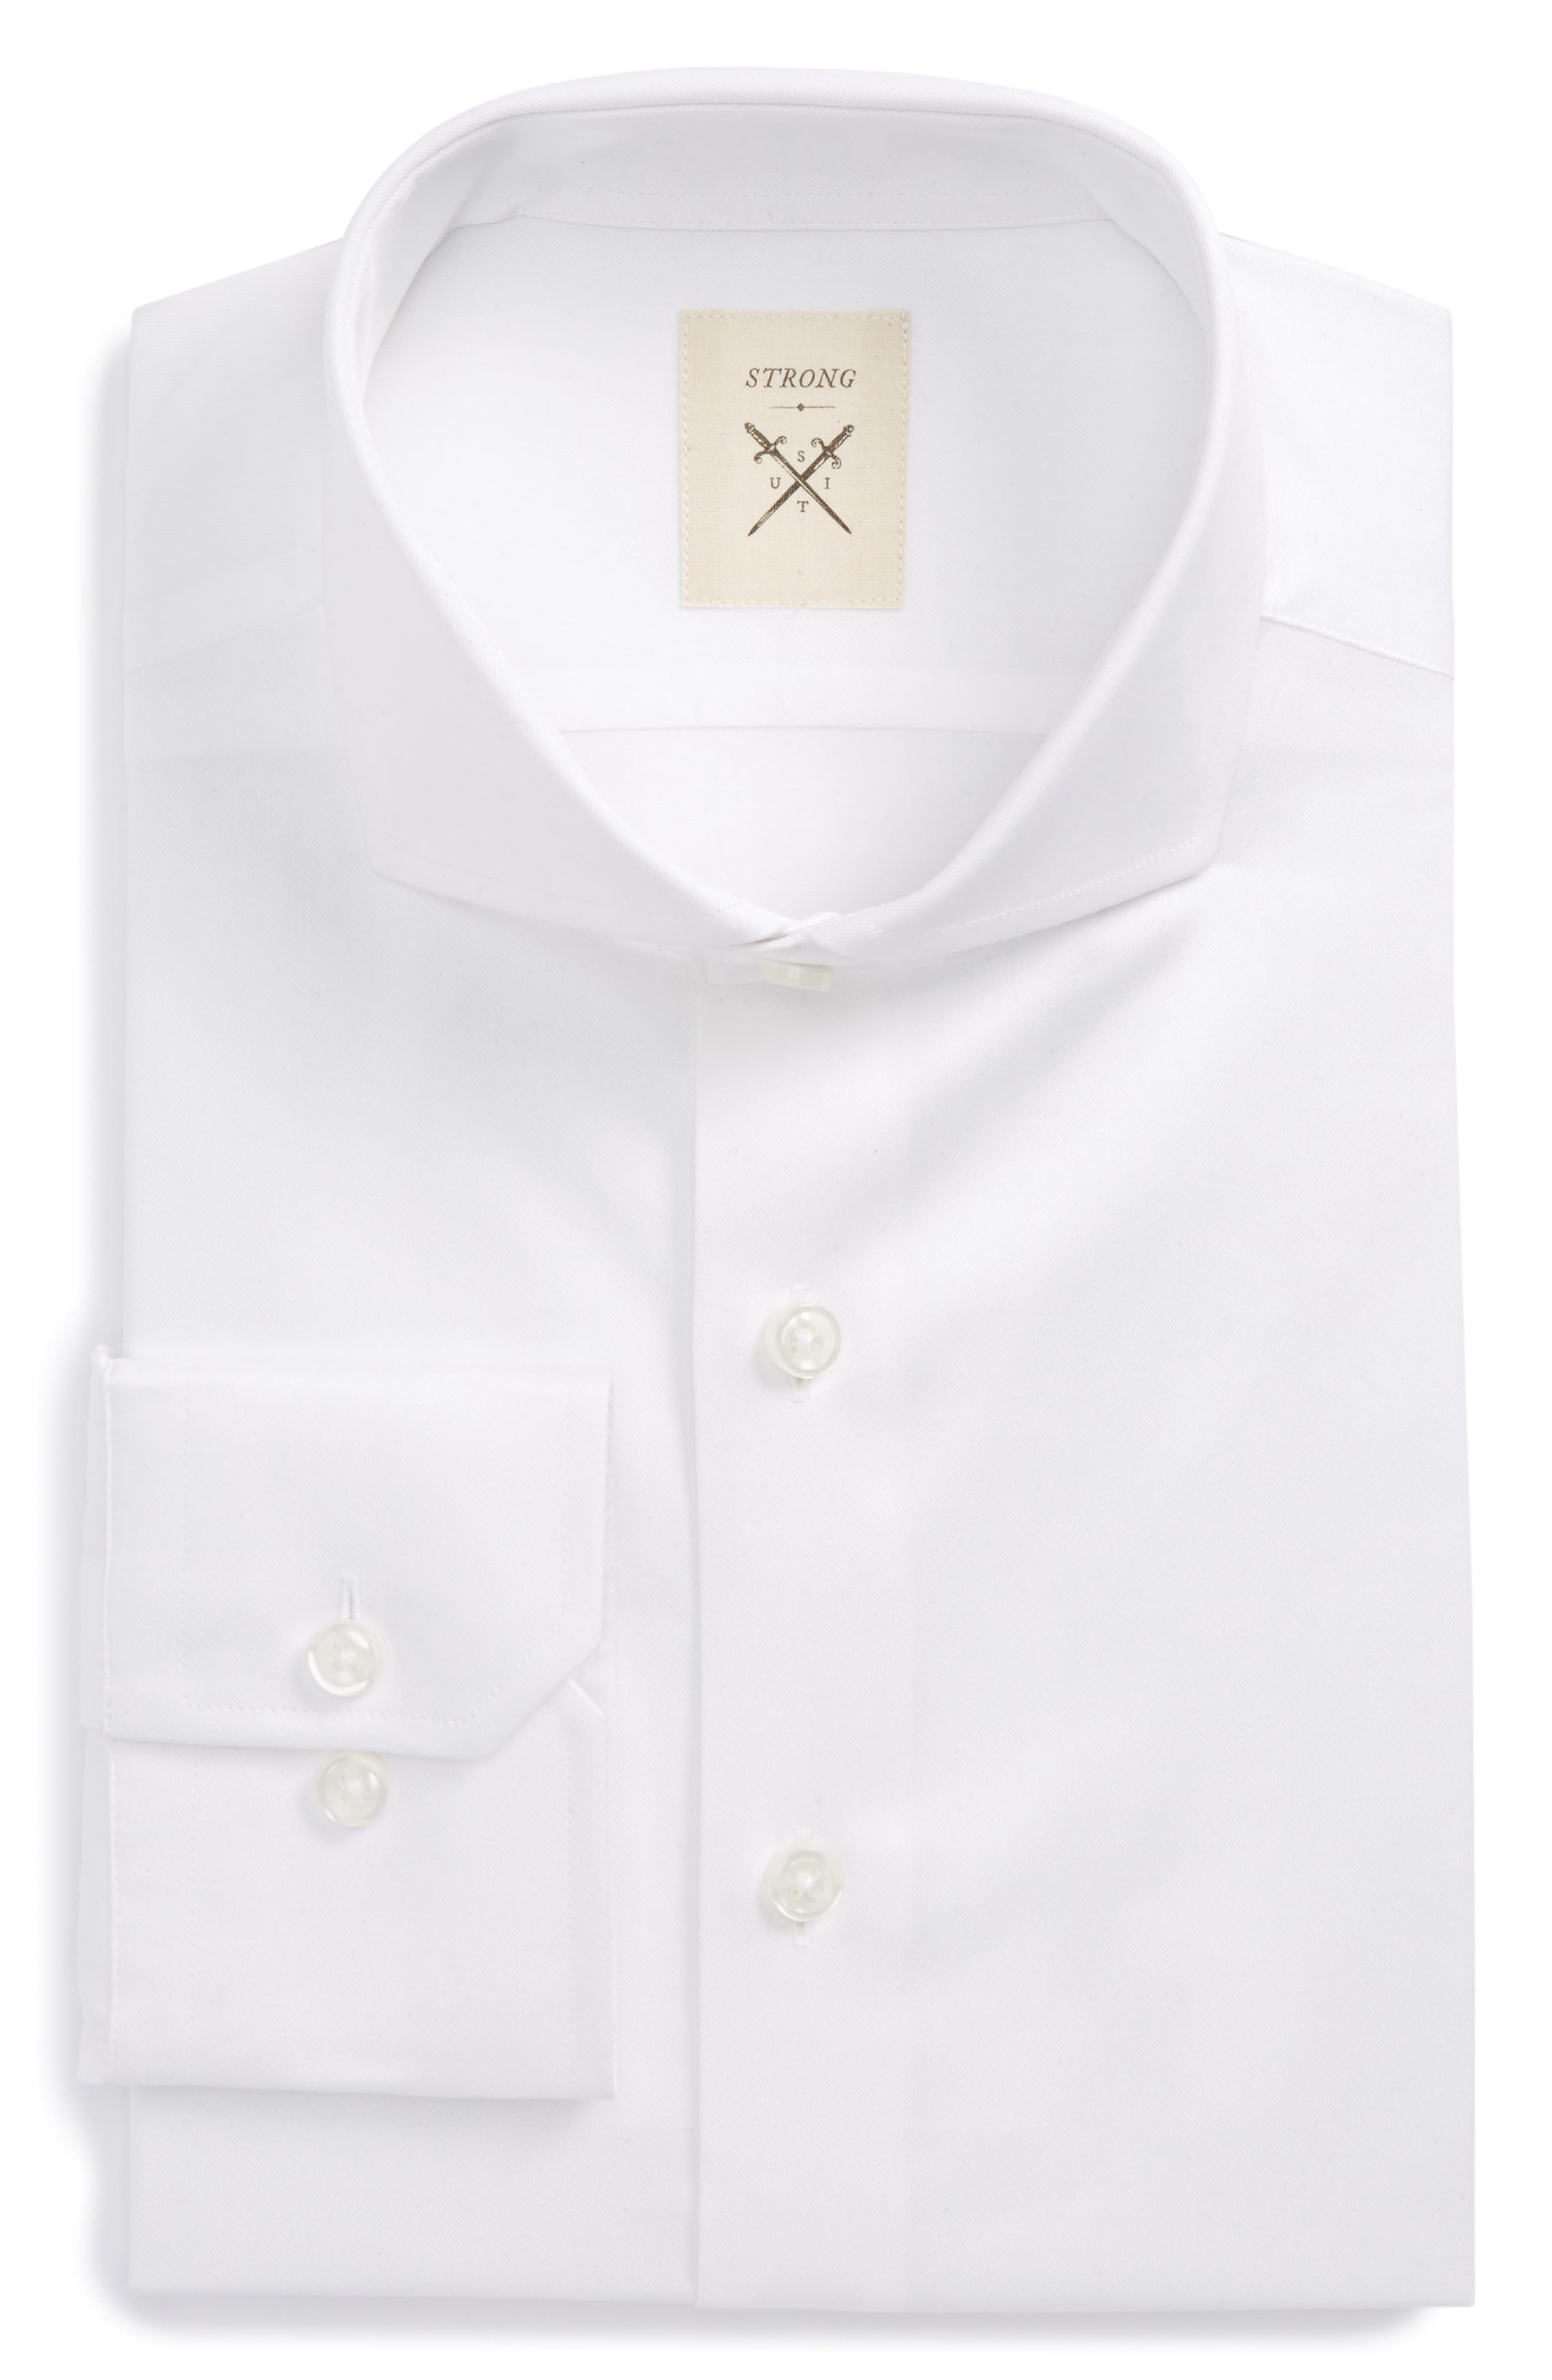 Alternate Image 1 Selected - Strong Suit Trim Fit Solid Twill Dress Shirt